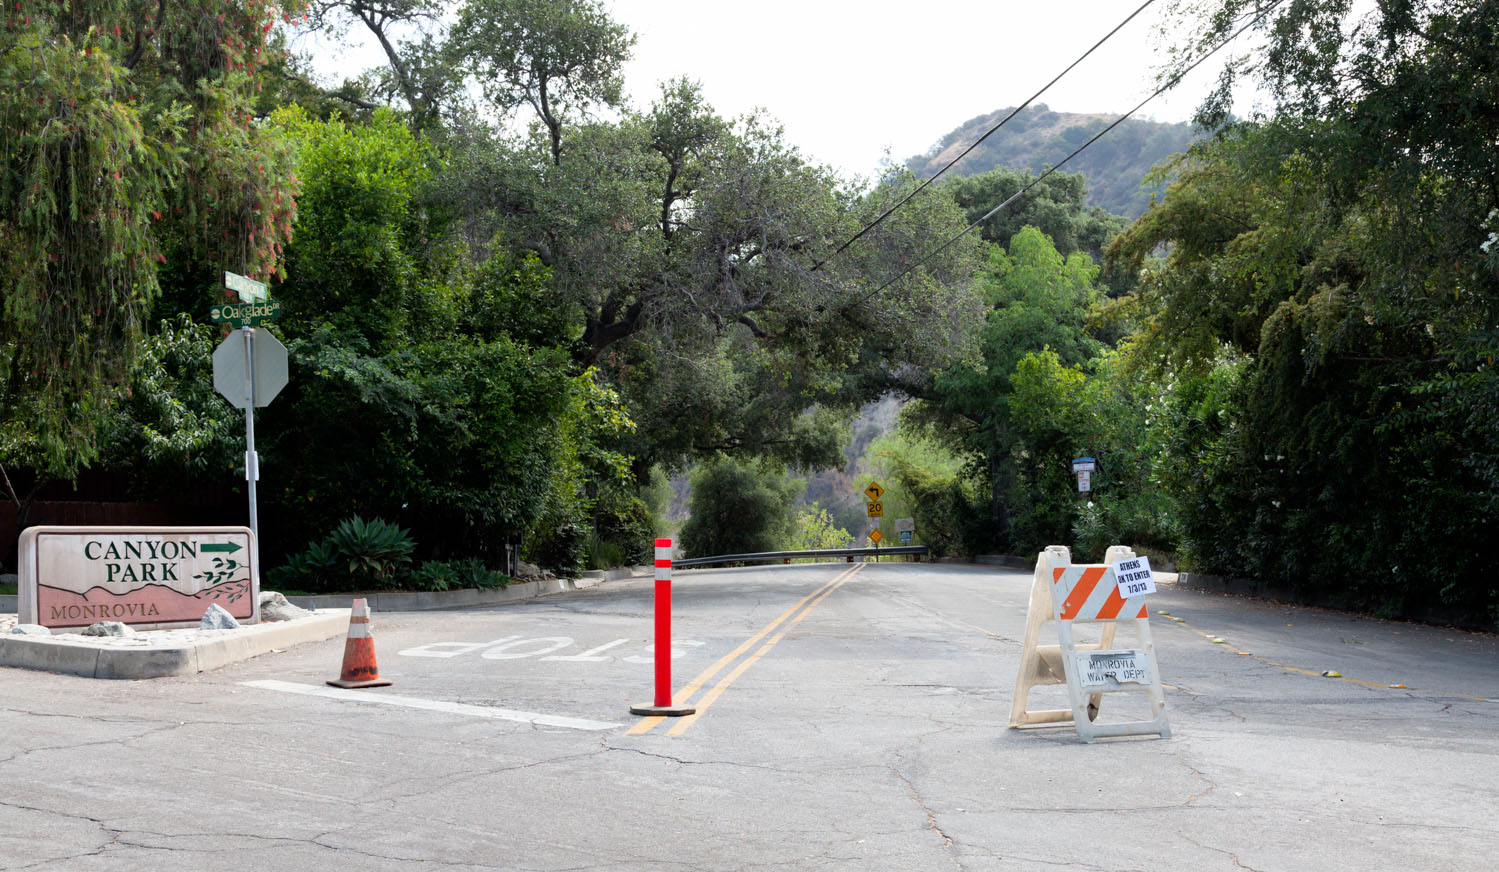 Monrovia Canyon Park Closed Over 4th Of July